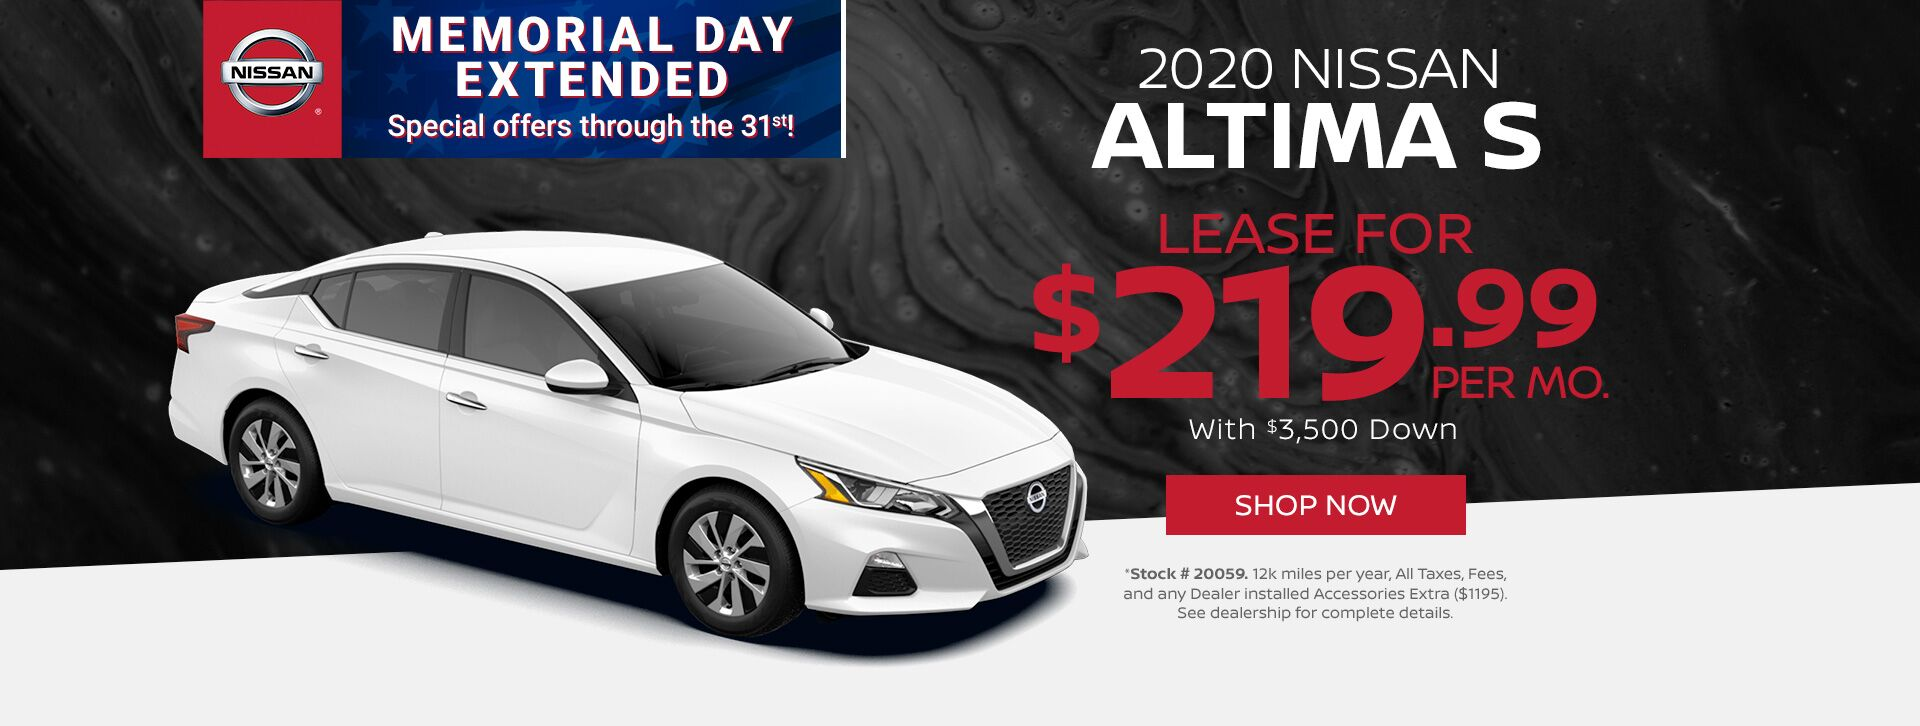 May - 2020 Altima S